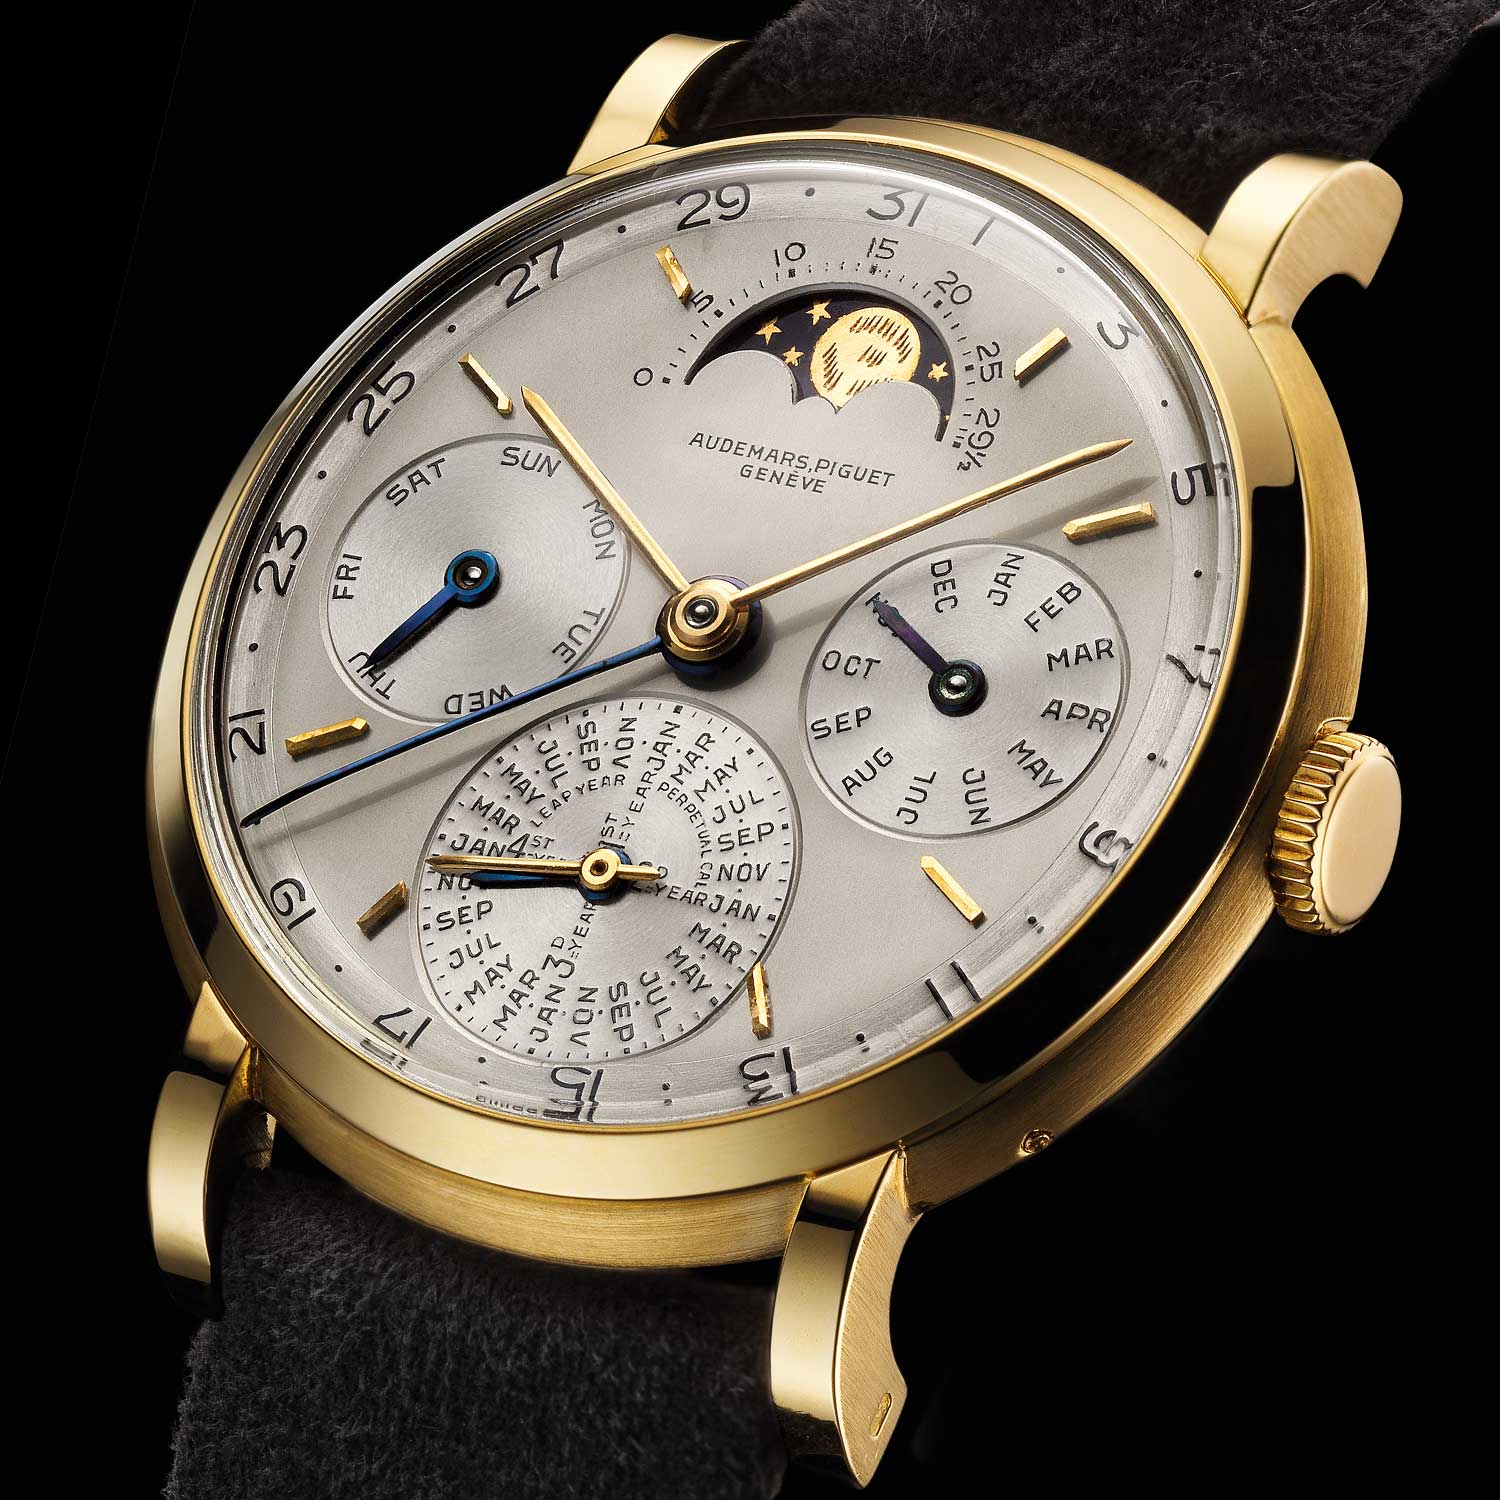 Perpetual calendar wristwatch. Movement No 66136, case No 11151. Calibre 13VZSSQP, 18-carat yellow gold case. Gold dial, silver-plated. Black enamel numerals. Applied yellow gold hour-markers. Yellow gold timekeeping hands. Blued steel calendar hands. Movement made in 1955, watch sold in 1959 to Vacheron Constantin (Genève). Audemars Piguet Heritage Collection, Inv. 1732